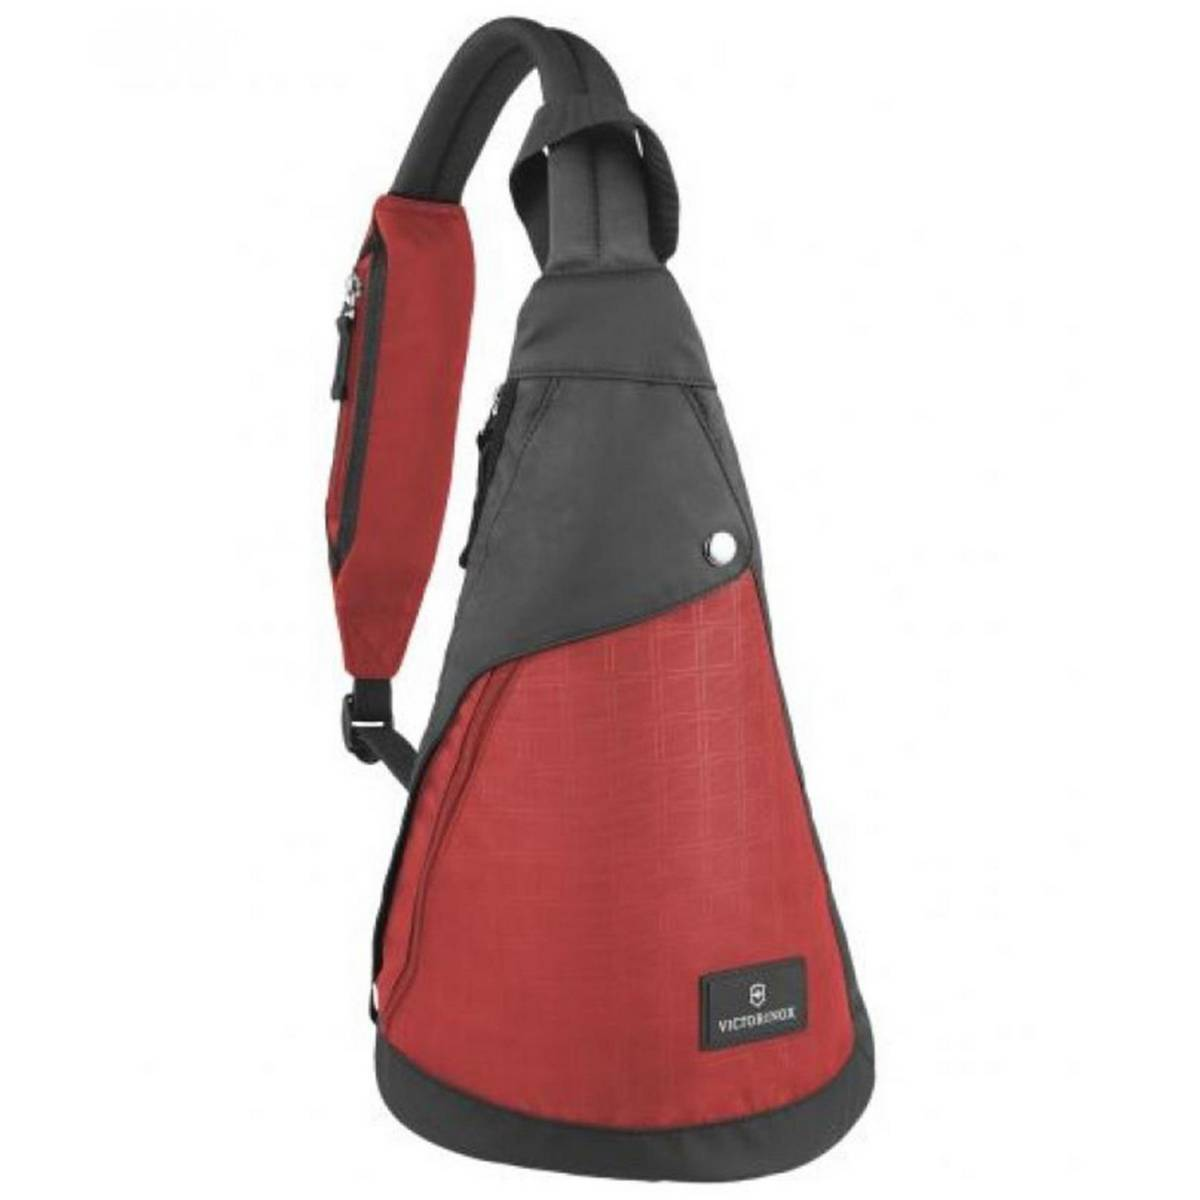 Dual-Compartment Monosling - Red